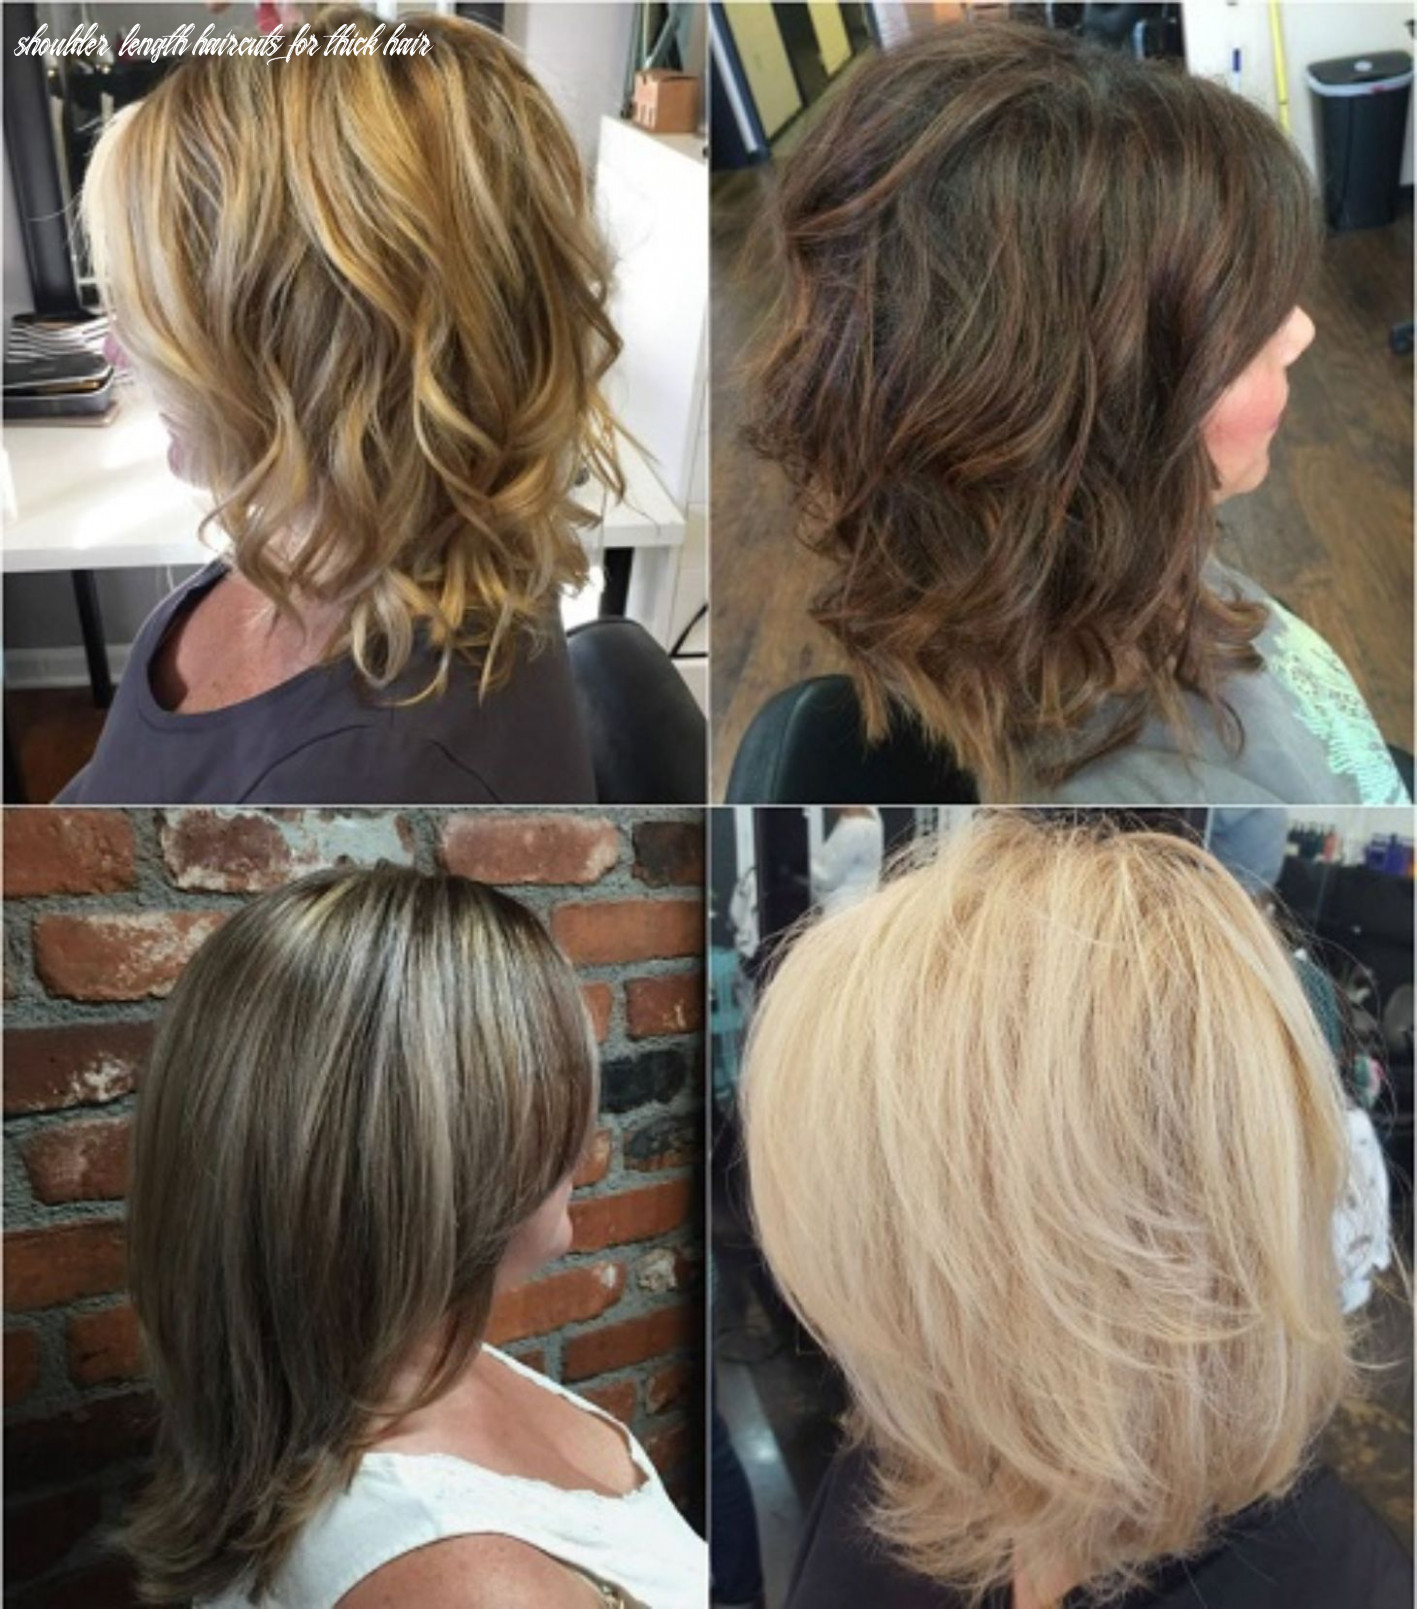 Pin on hairrcuts shoulder length haircuts for thick hair